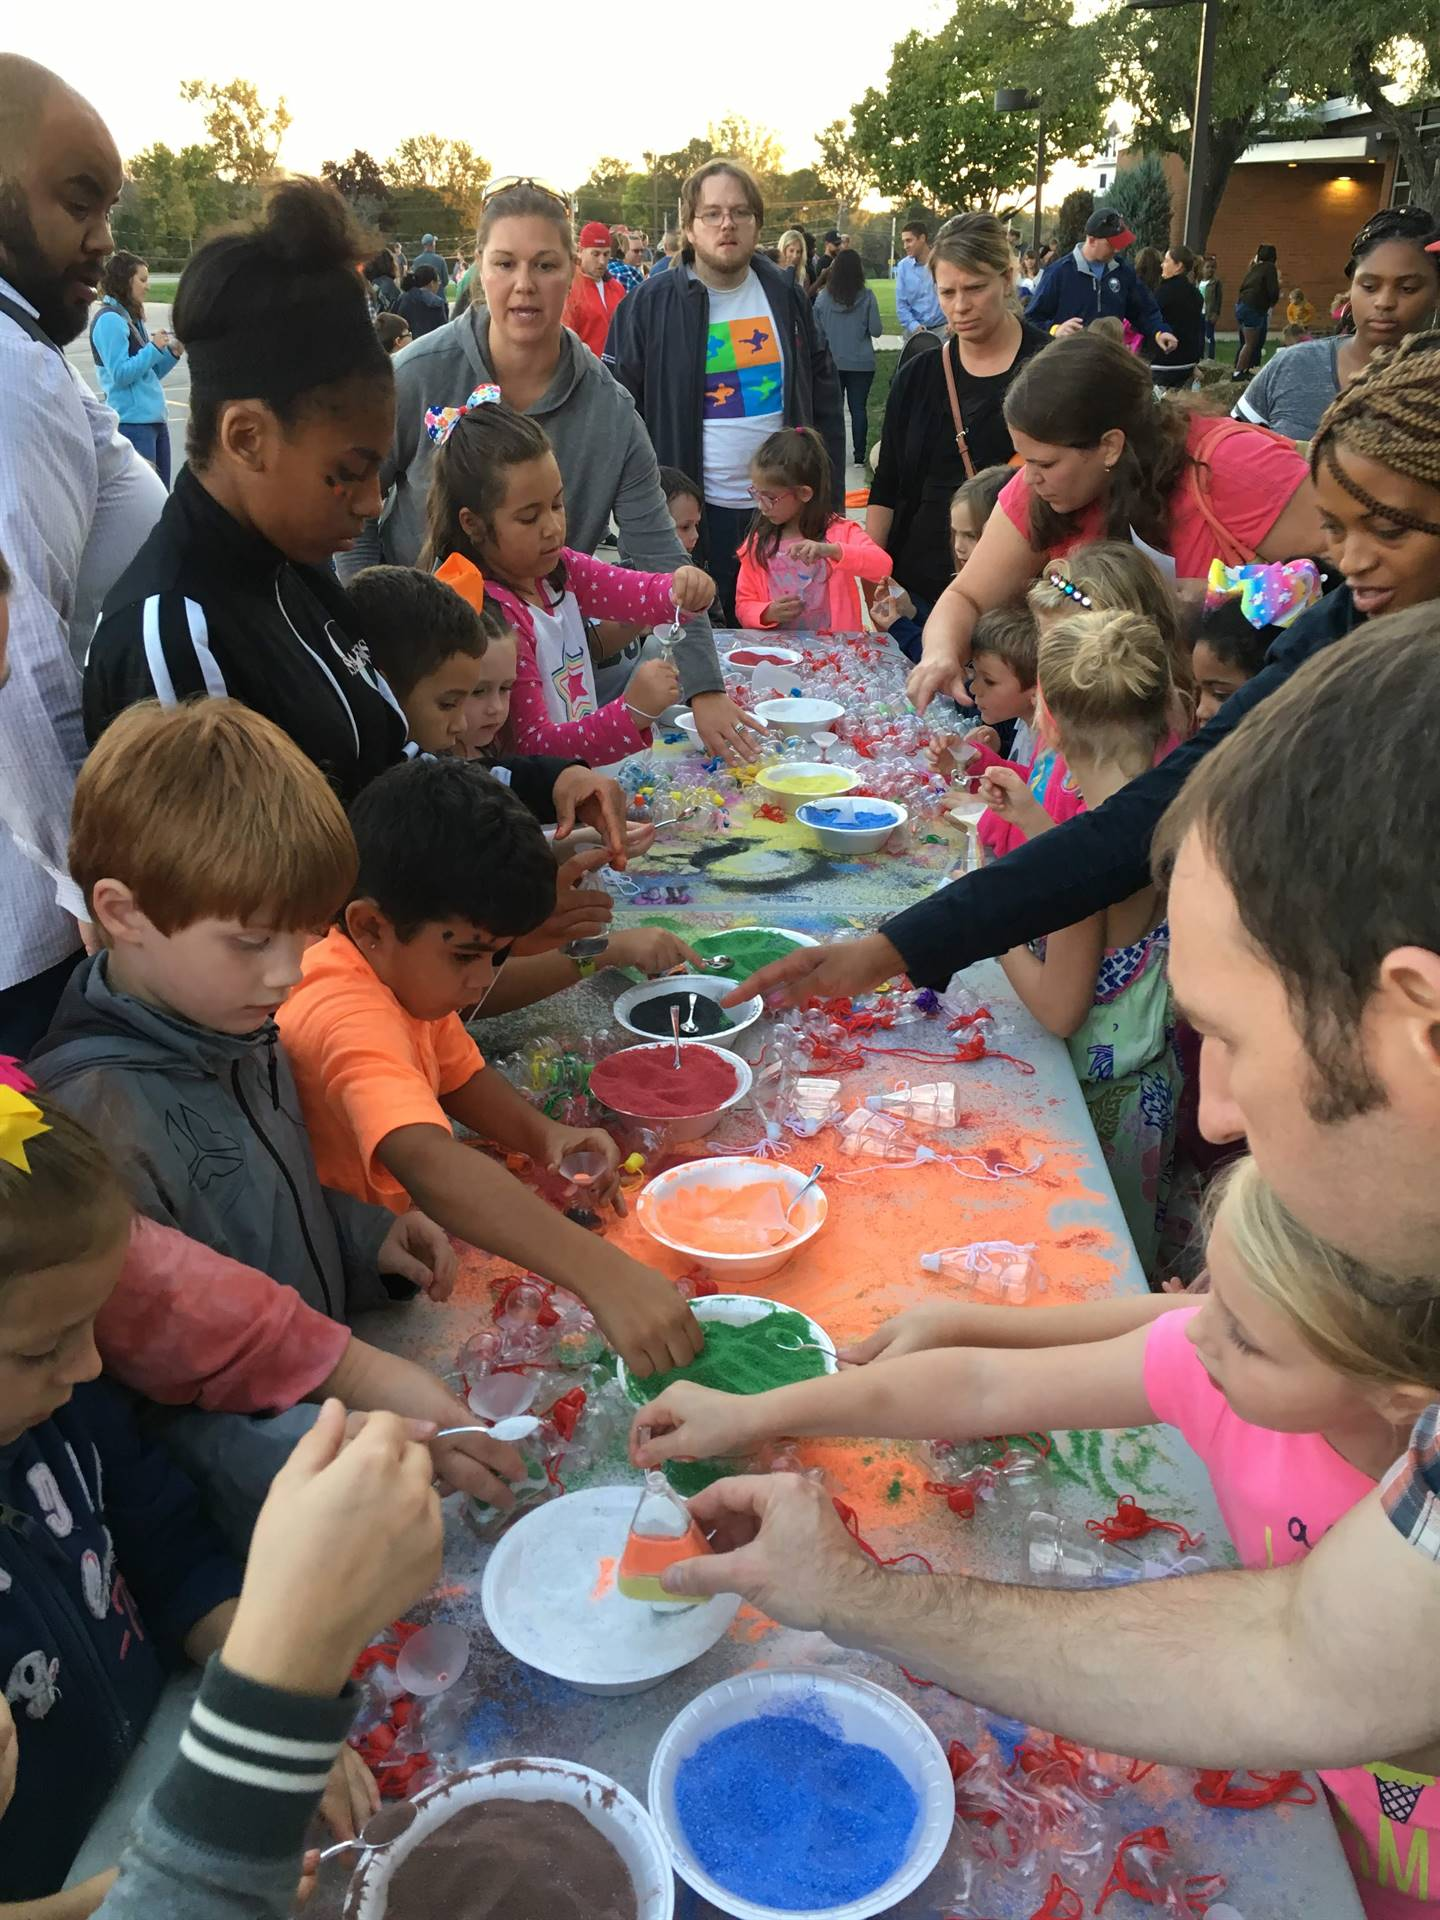 Families making crafts at Fall Festival